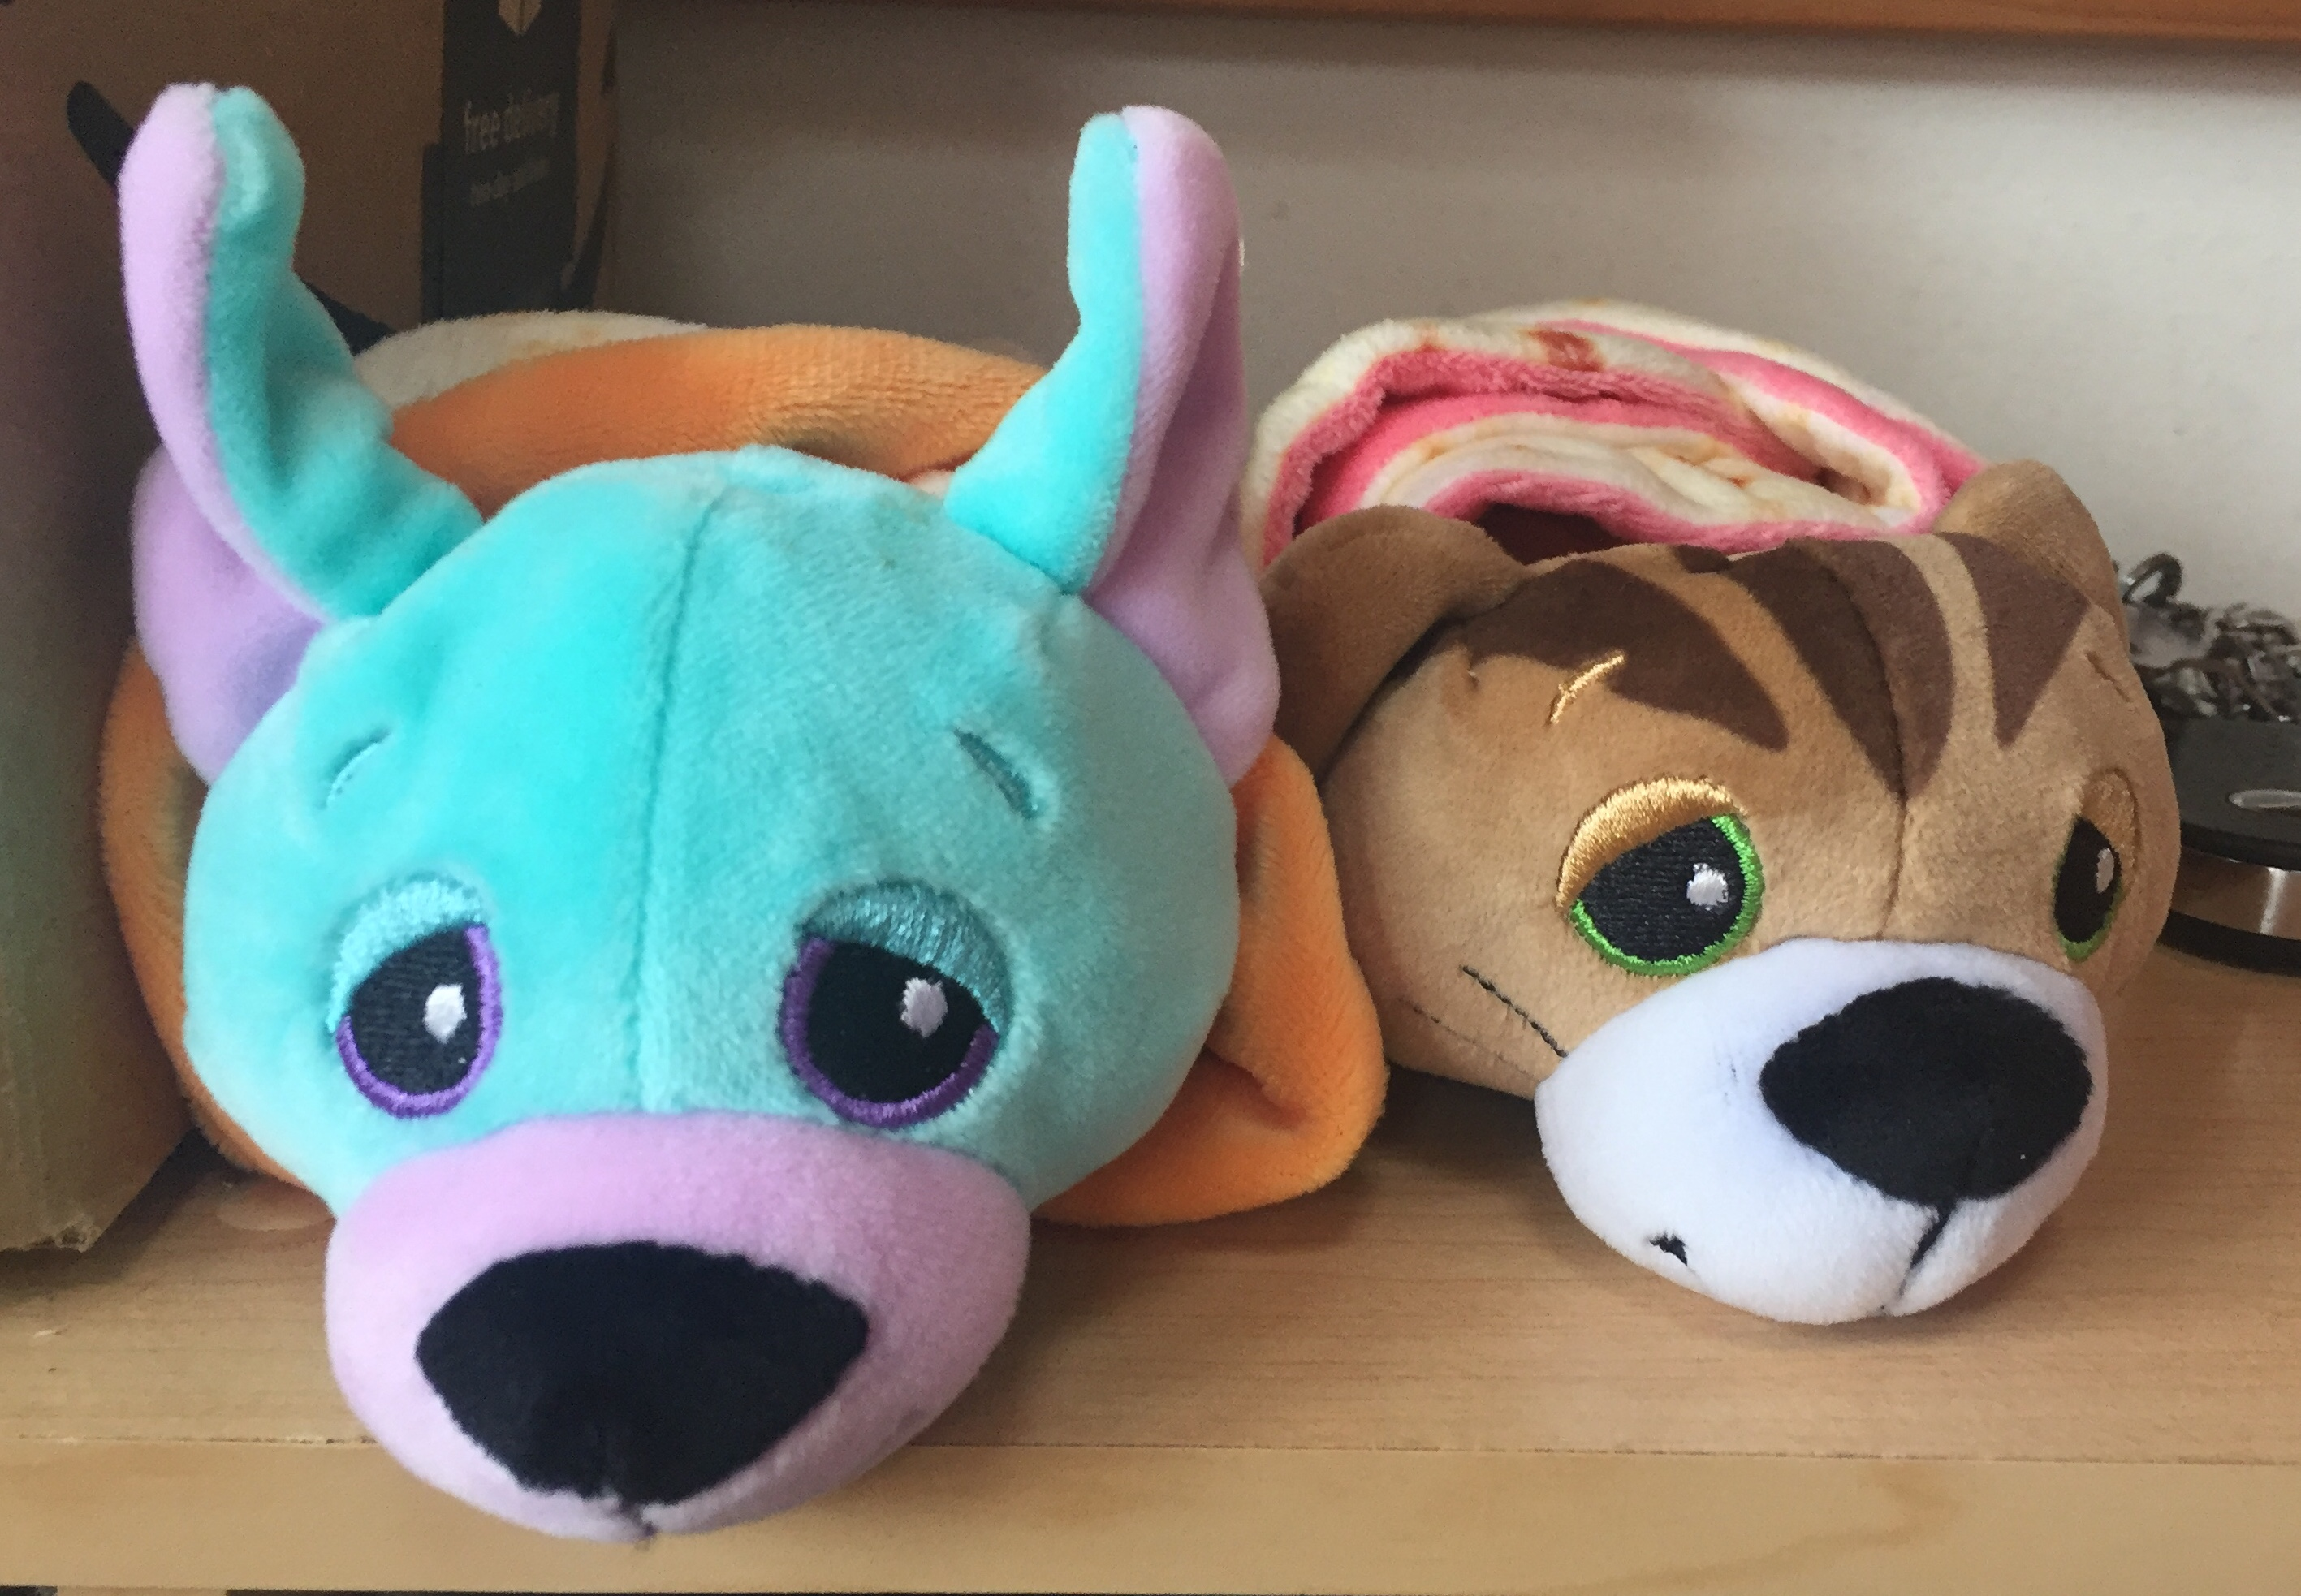 Cutetitoes burrito wrapped surprise stuffed animals blind bag